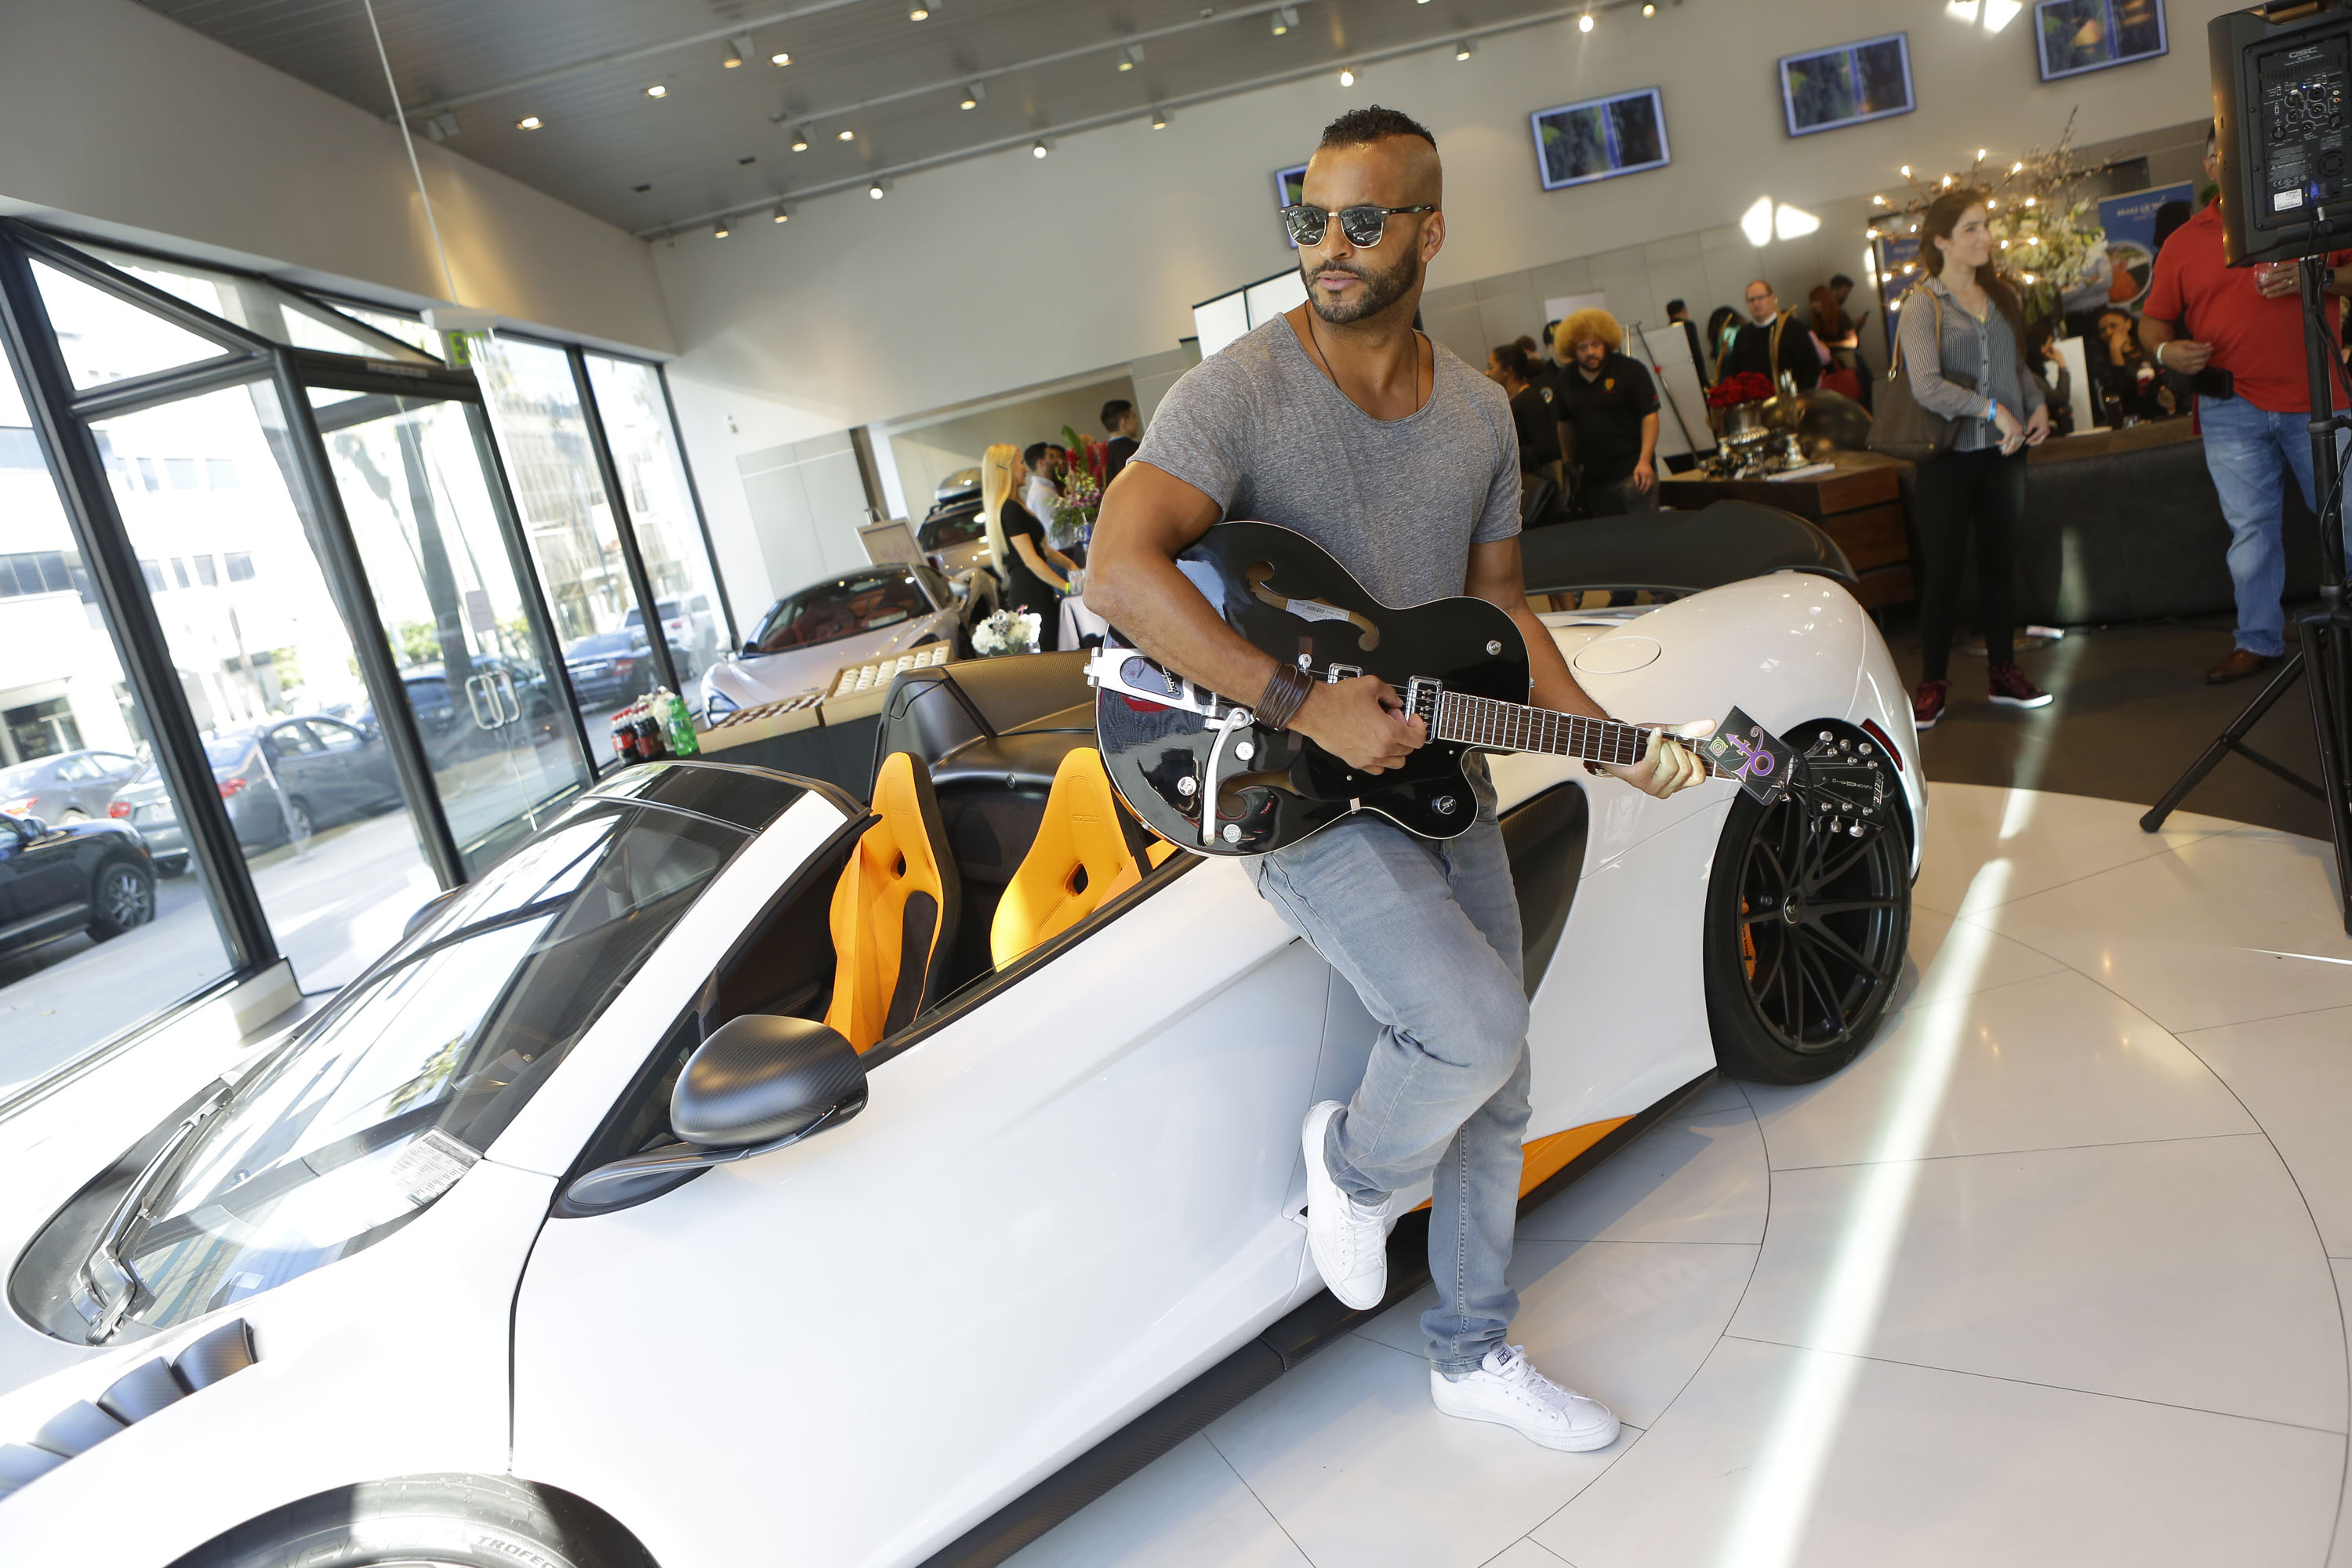 Actor Ricky Whittle holding the signed Price guitar (Photo by Tiffany Rose/Getty Images for GBK)